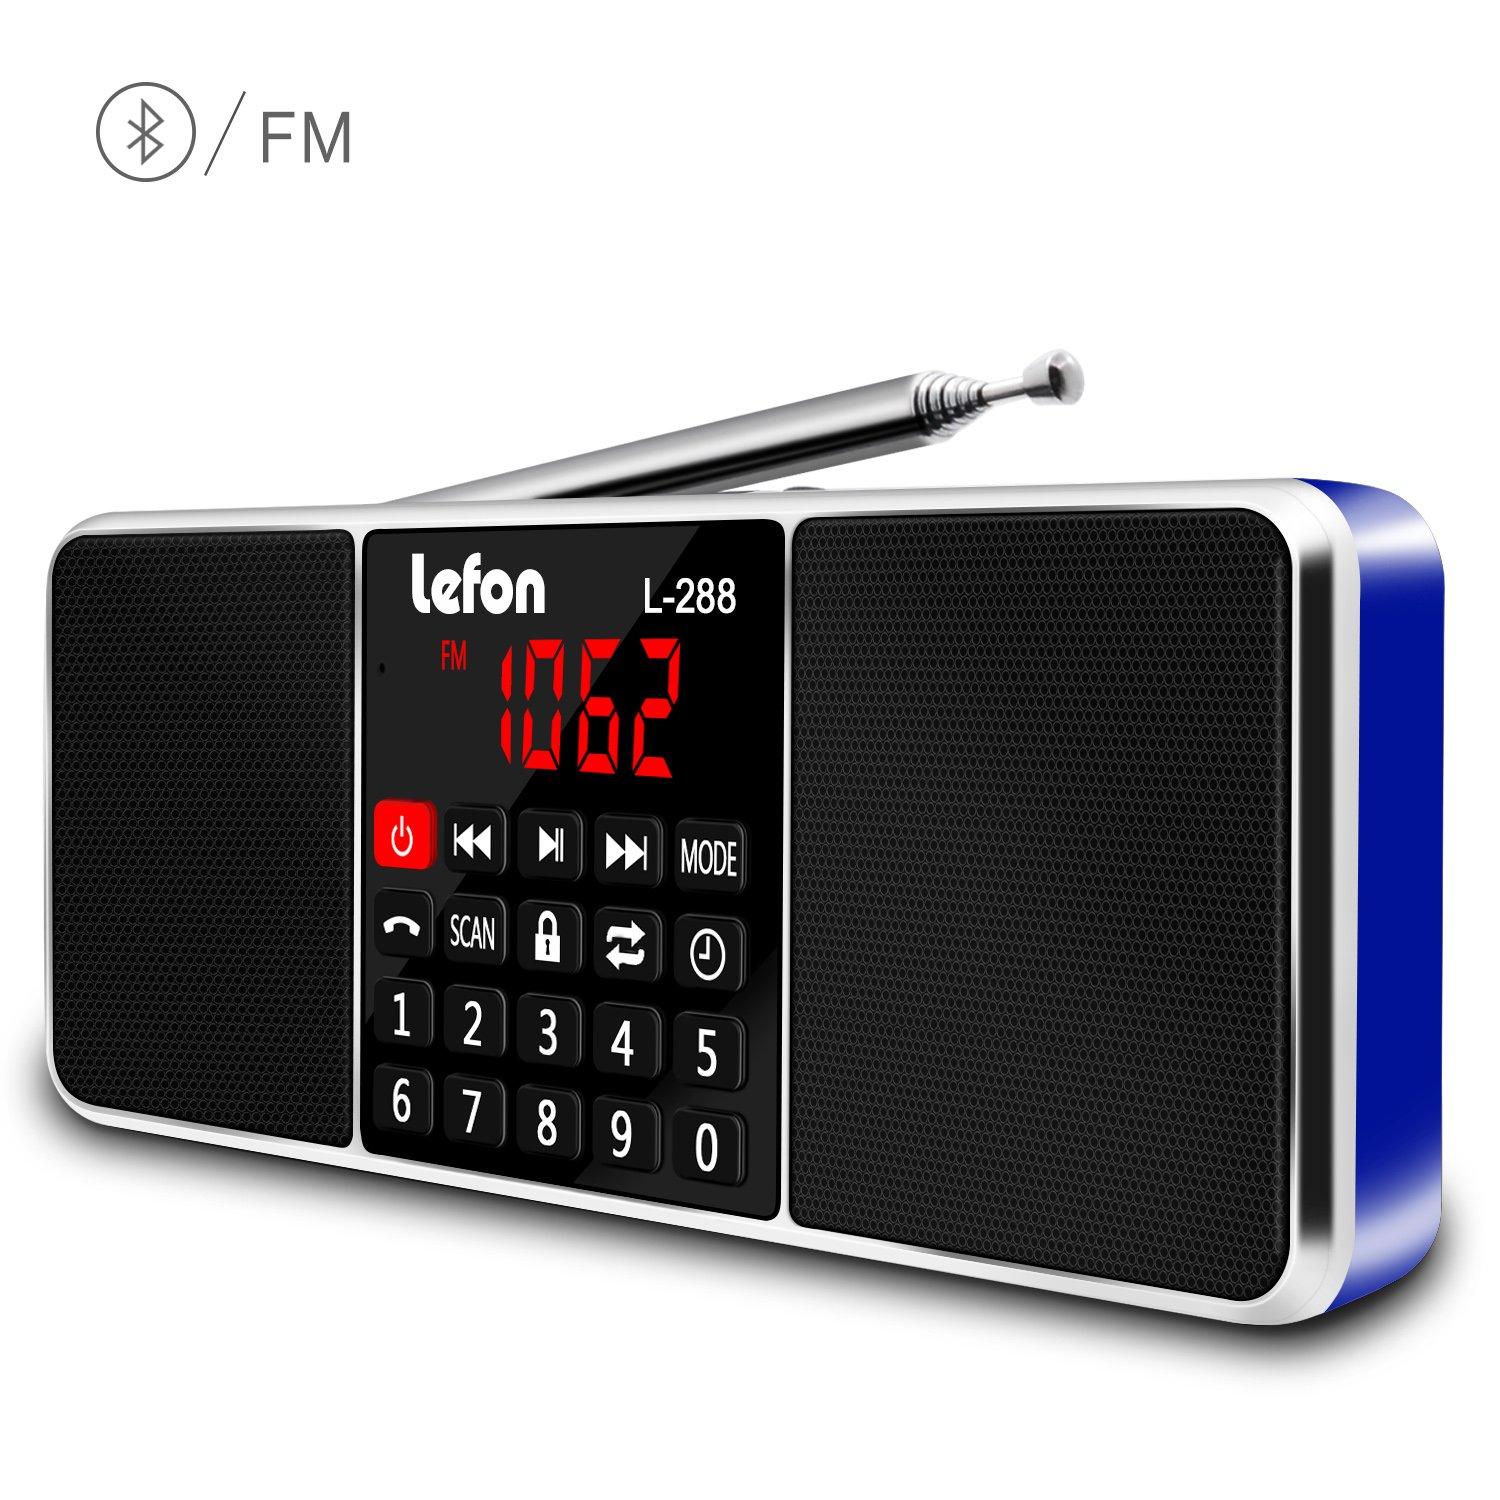 LEFON Multifunction Digital AM FM Radio Bluetooth Media Speaker MP3 Music Player Support TF Card/USB Disk with LED Screen Display and Setting Timing Shutdown Function (Blue-Upgraded Version)